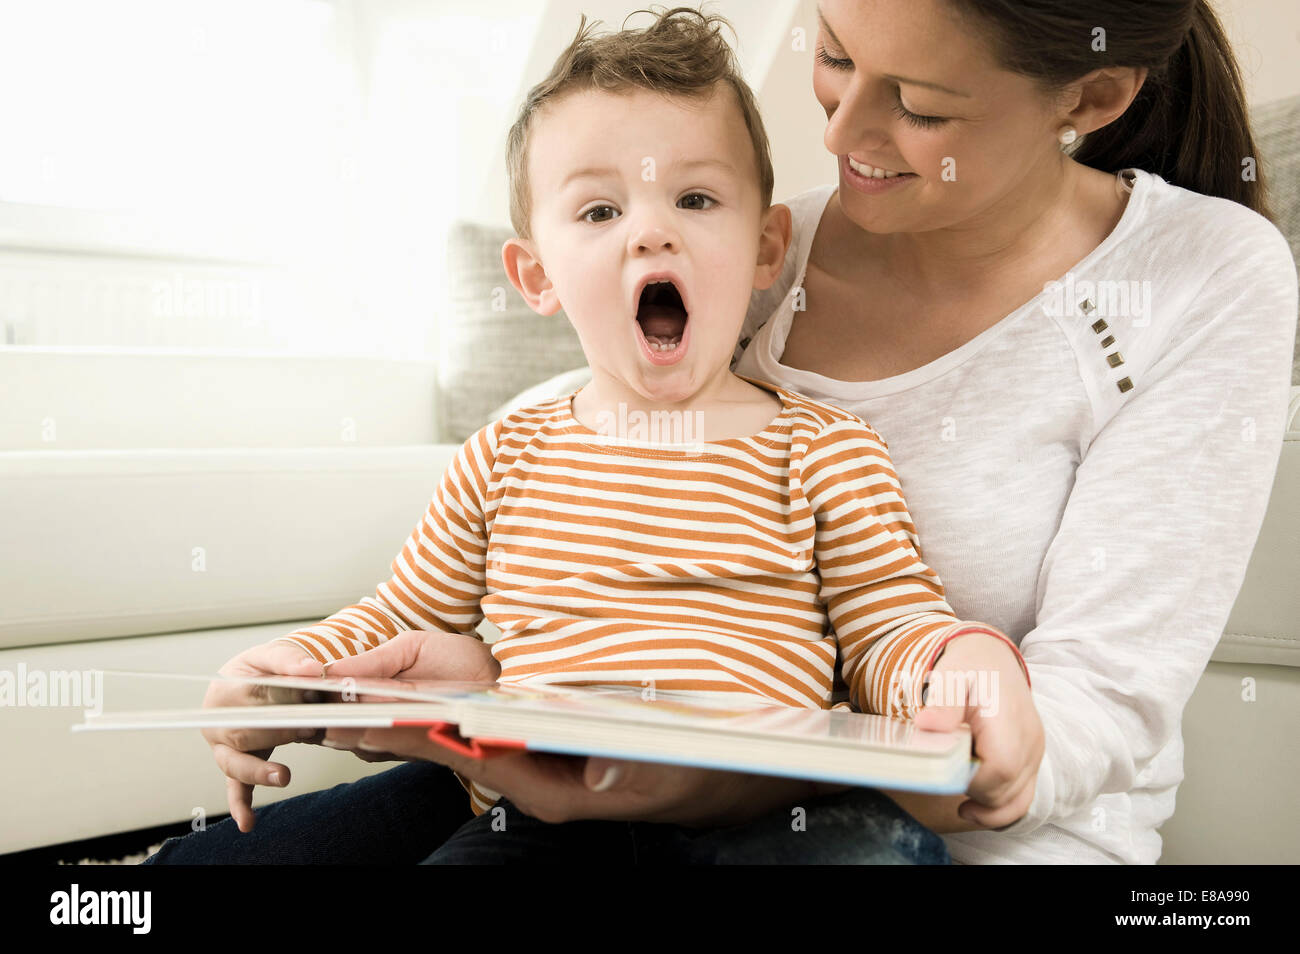 Mother and son are watching storybook, smiling - Stock Image